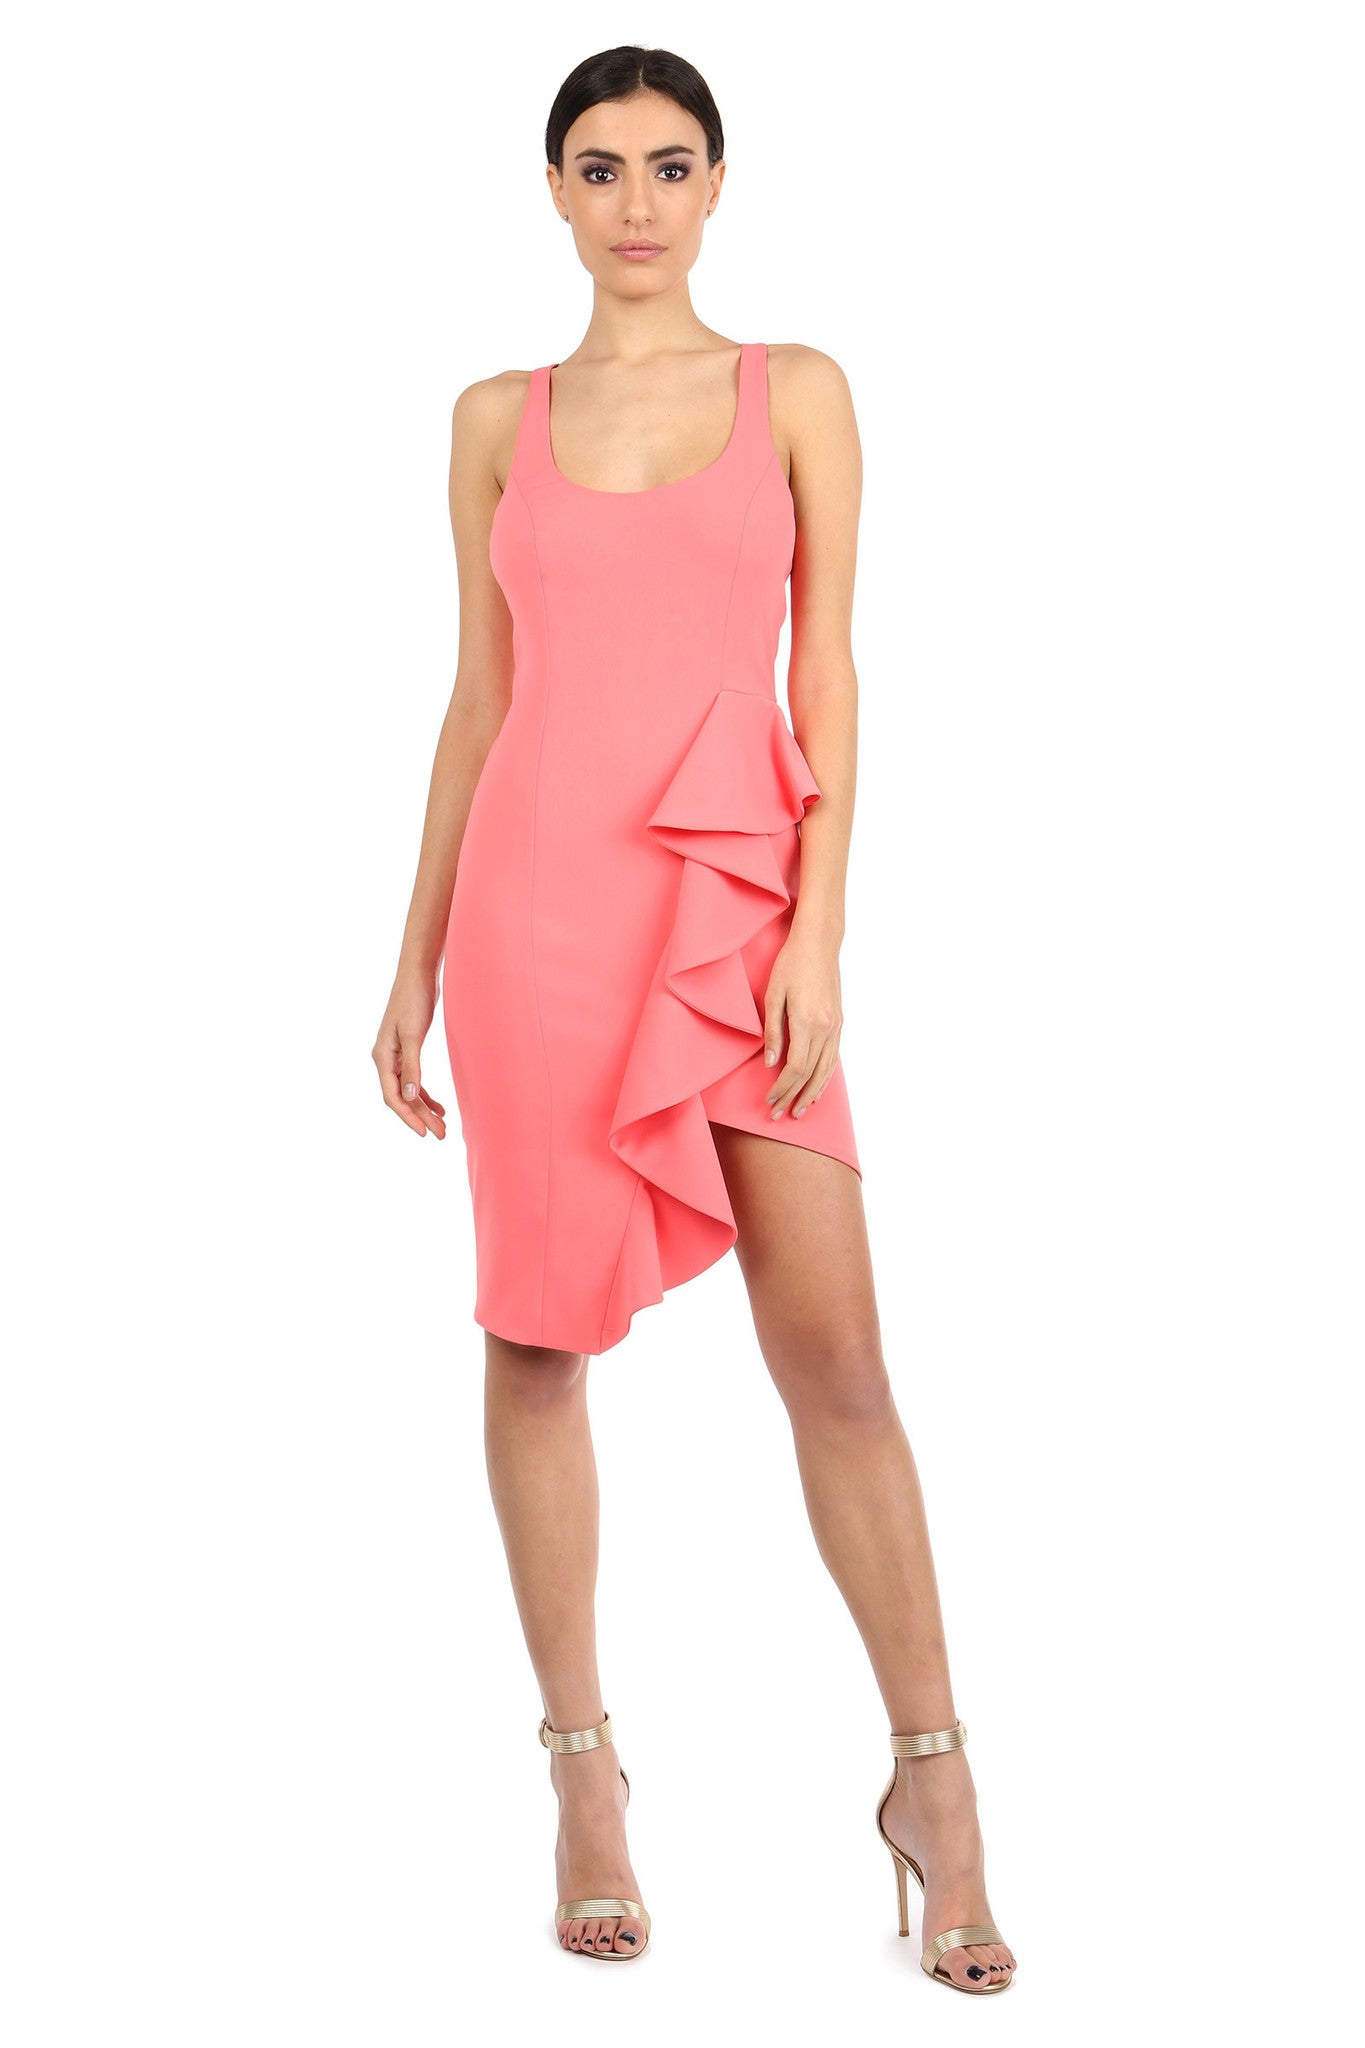 Jay Godfrey Coral Scoop Neck Ruffle Dress - Front View